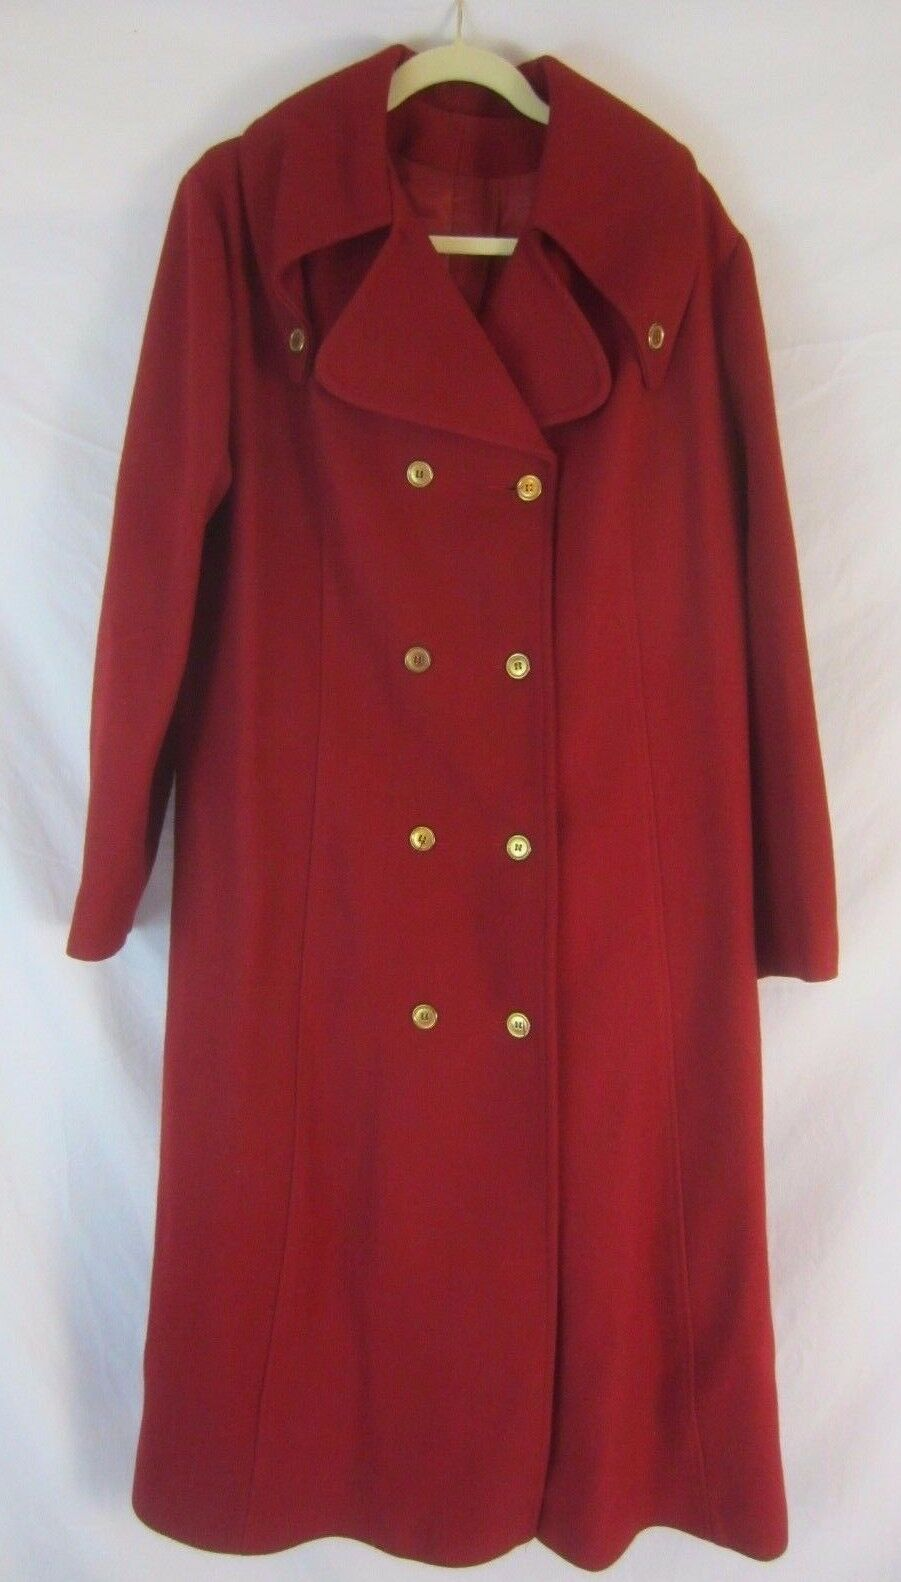 Red Lined Wool Heavy Winter Coat - Women's M L - Made in USA Union Made - F17